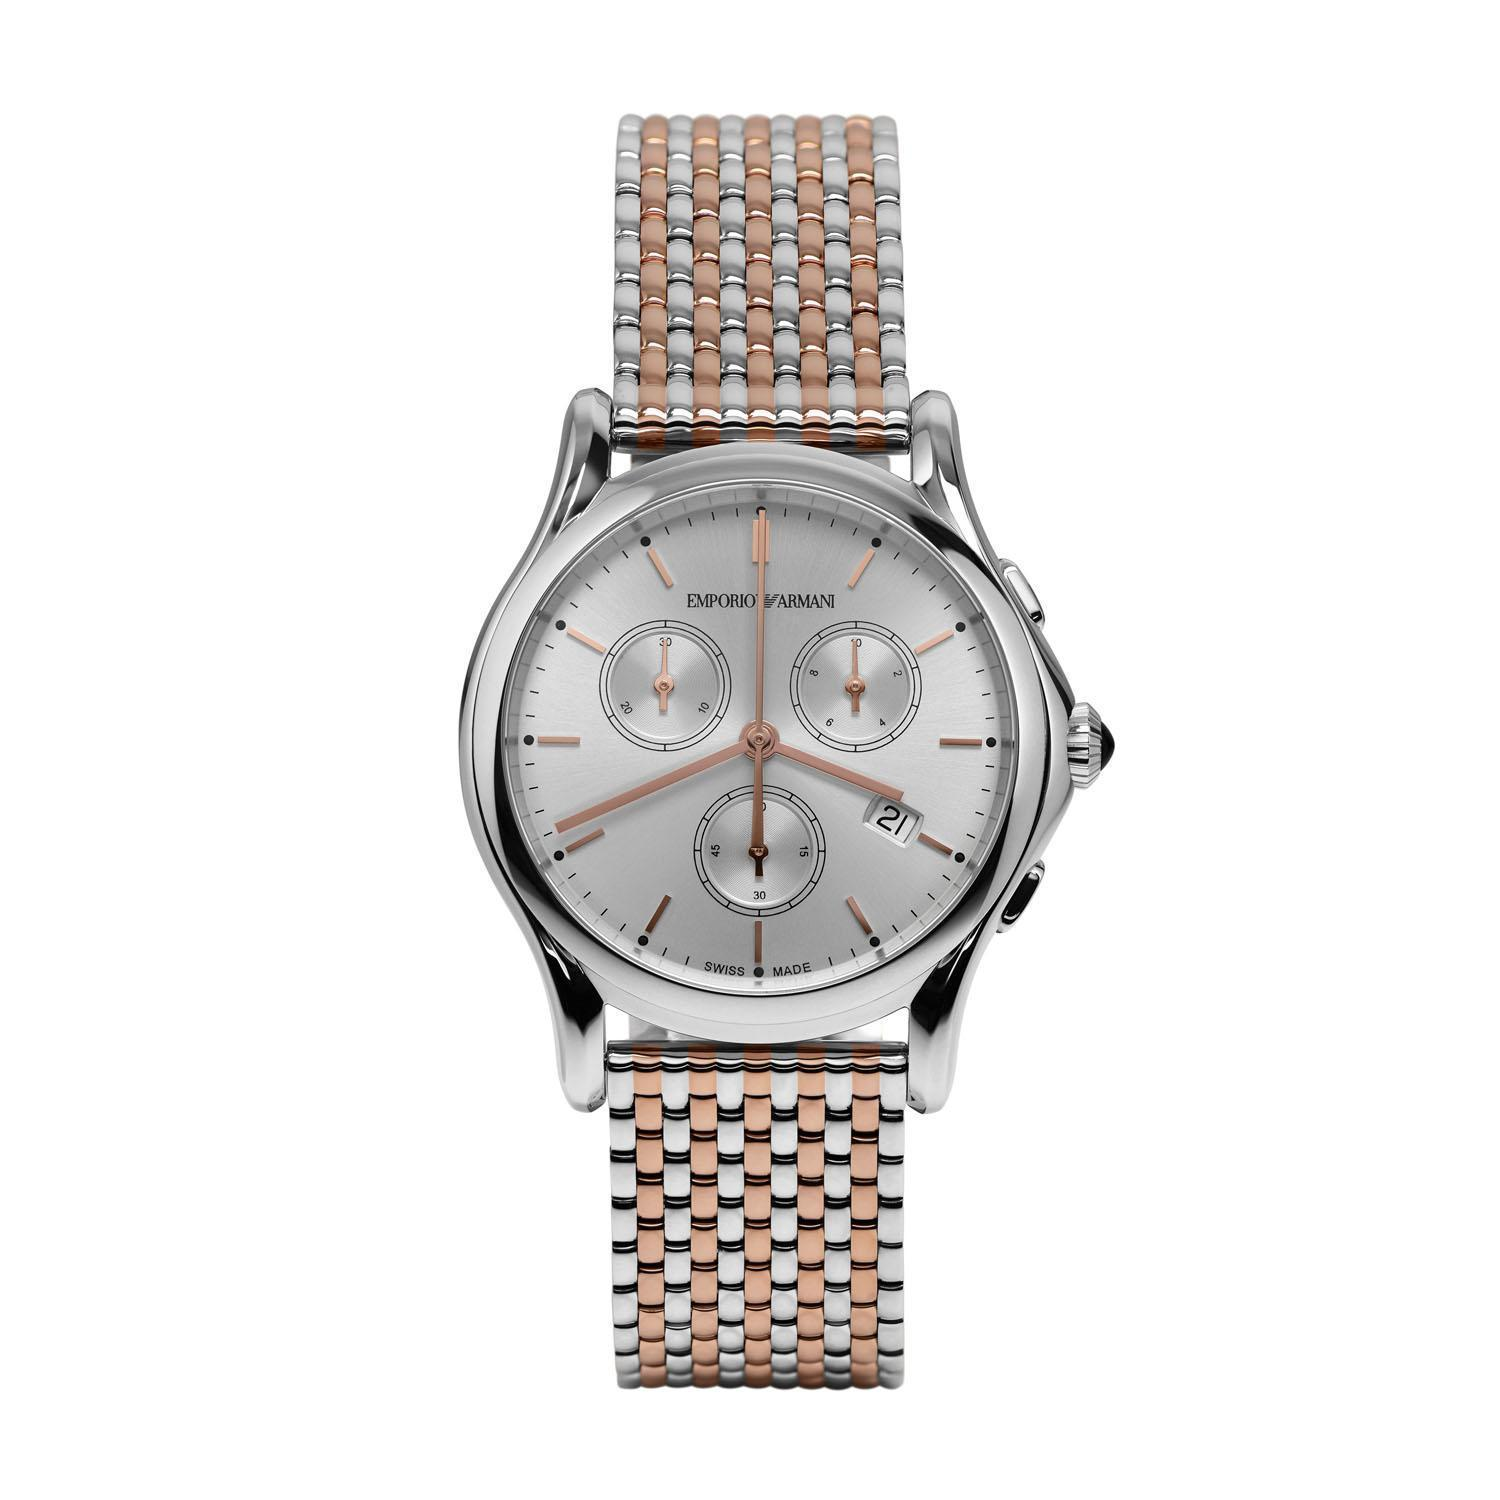 Emporio Armani Swiss Made Chronograph Steel & Pink Gold Bracelet Watch ARS6008 - $499.99